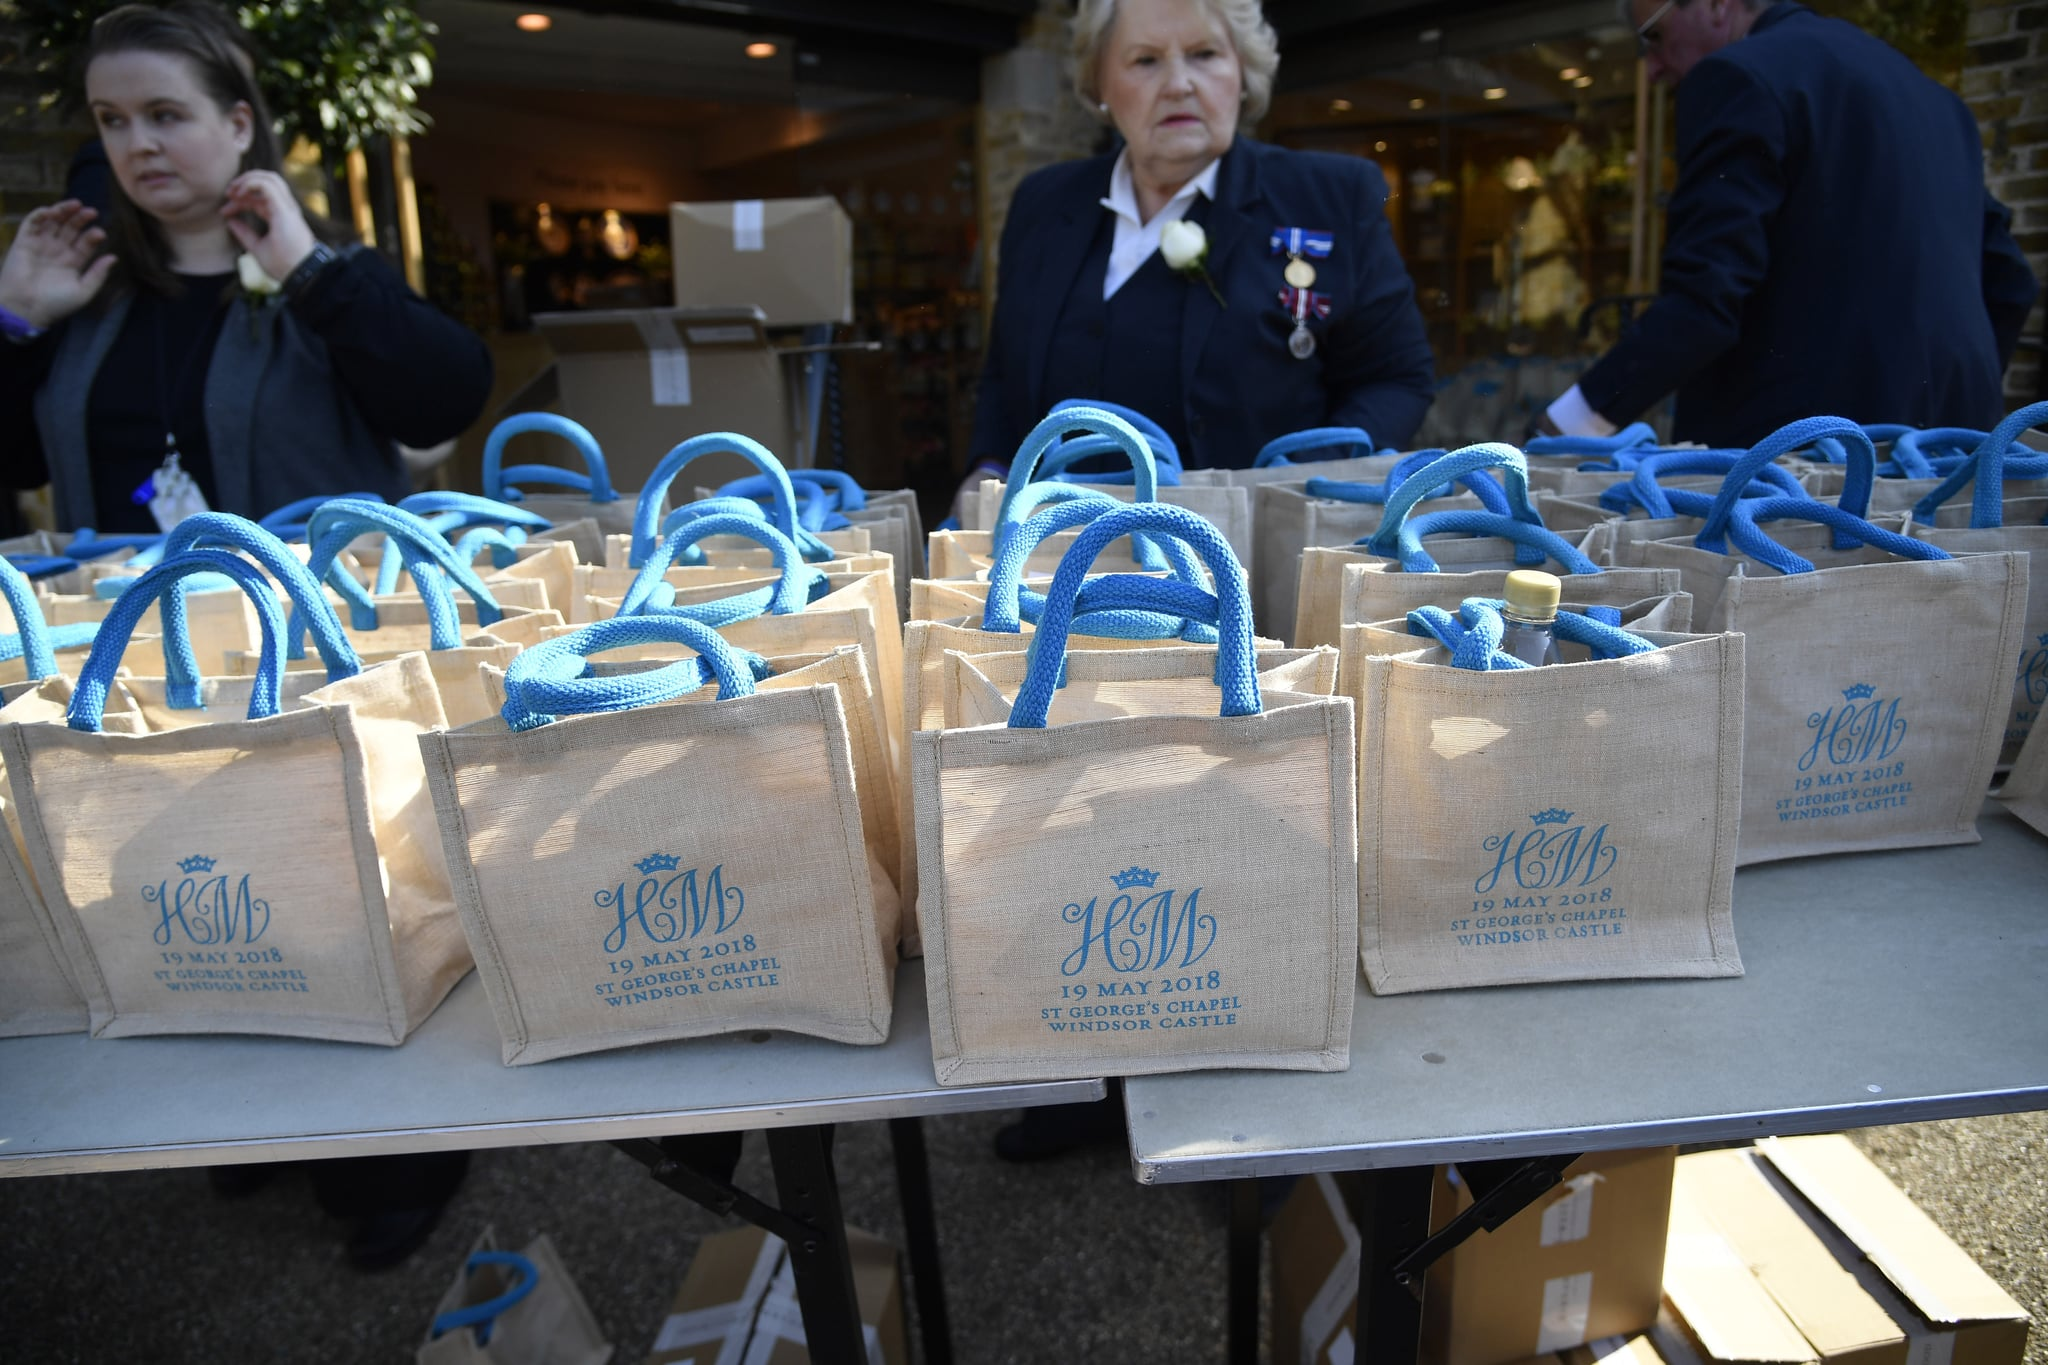 WINDSOR, UNITED KINGDOM - MAY 19:   Monogrammed gift bags at Windsor Castle before the wedding of Prince Harry to Meghan Markle on May 19, 2018 in Windsor, England. (Photo by Toby Melville - WPA Pool/Getty Images)